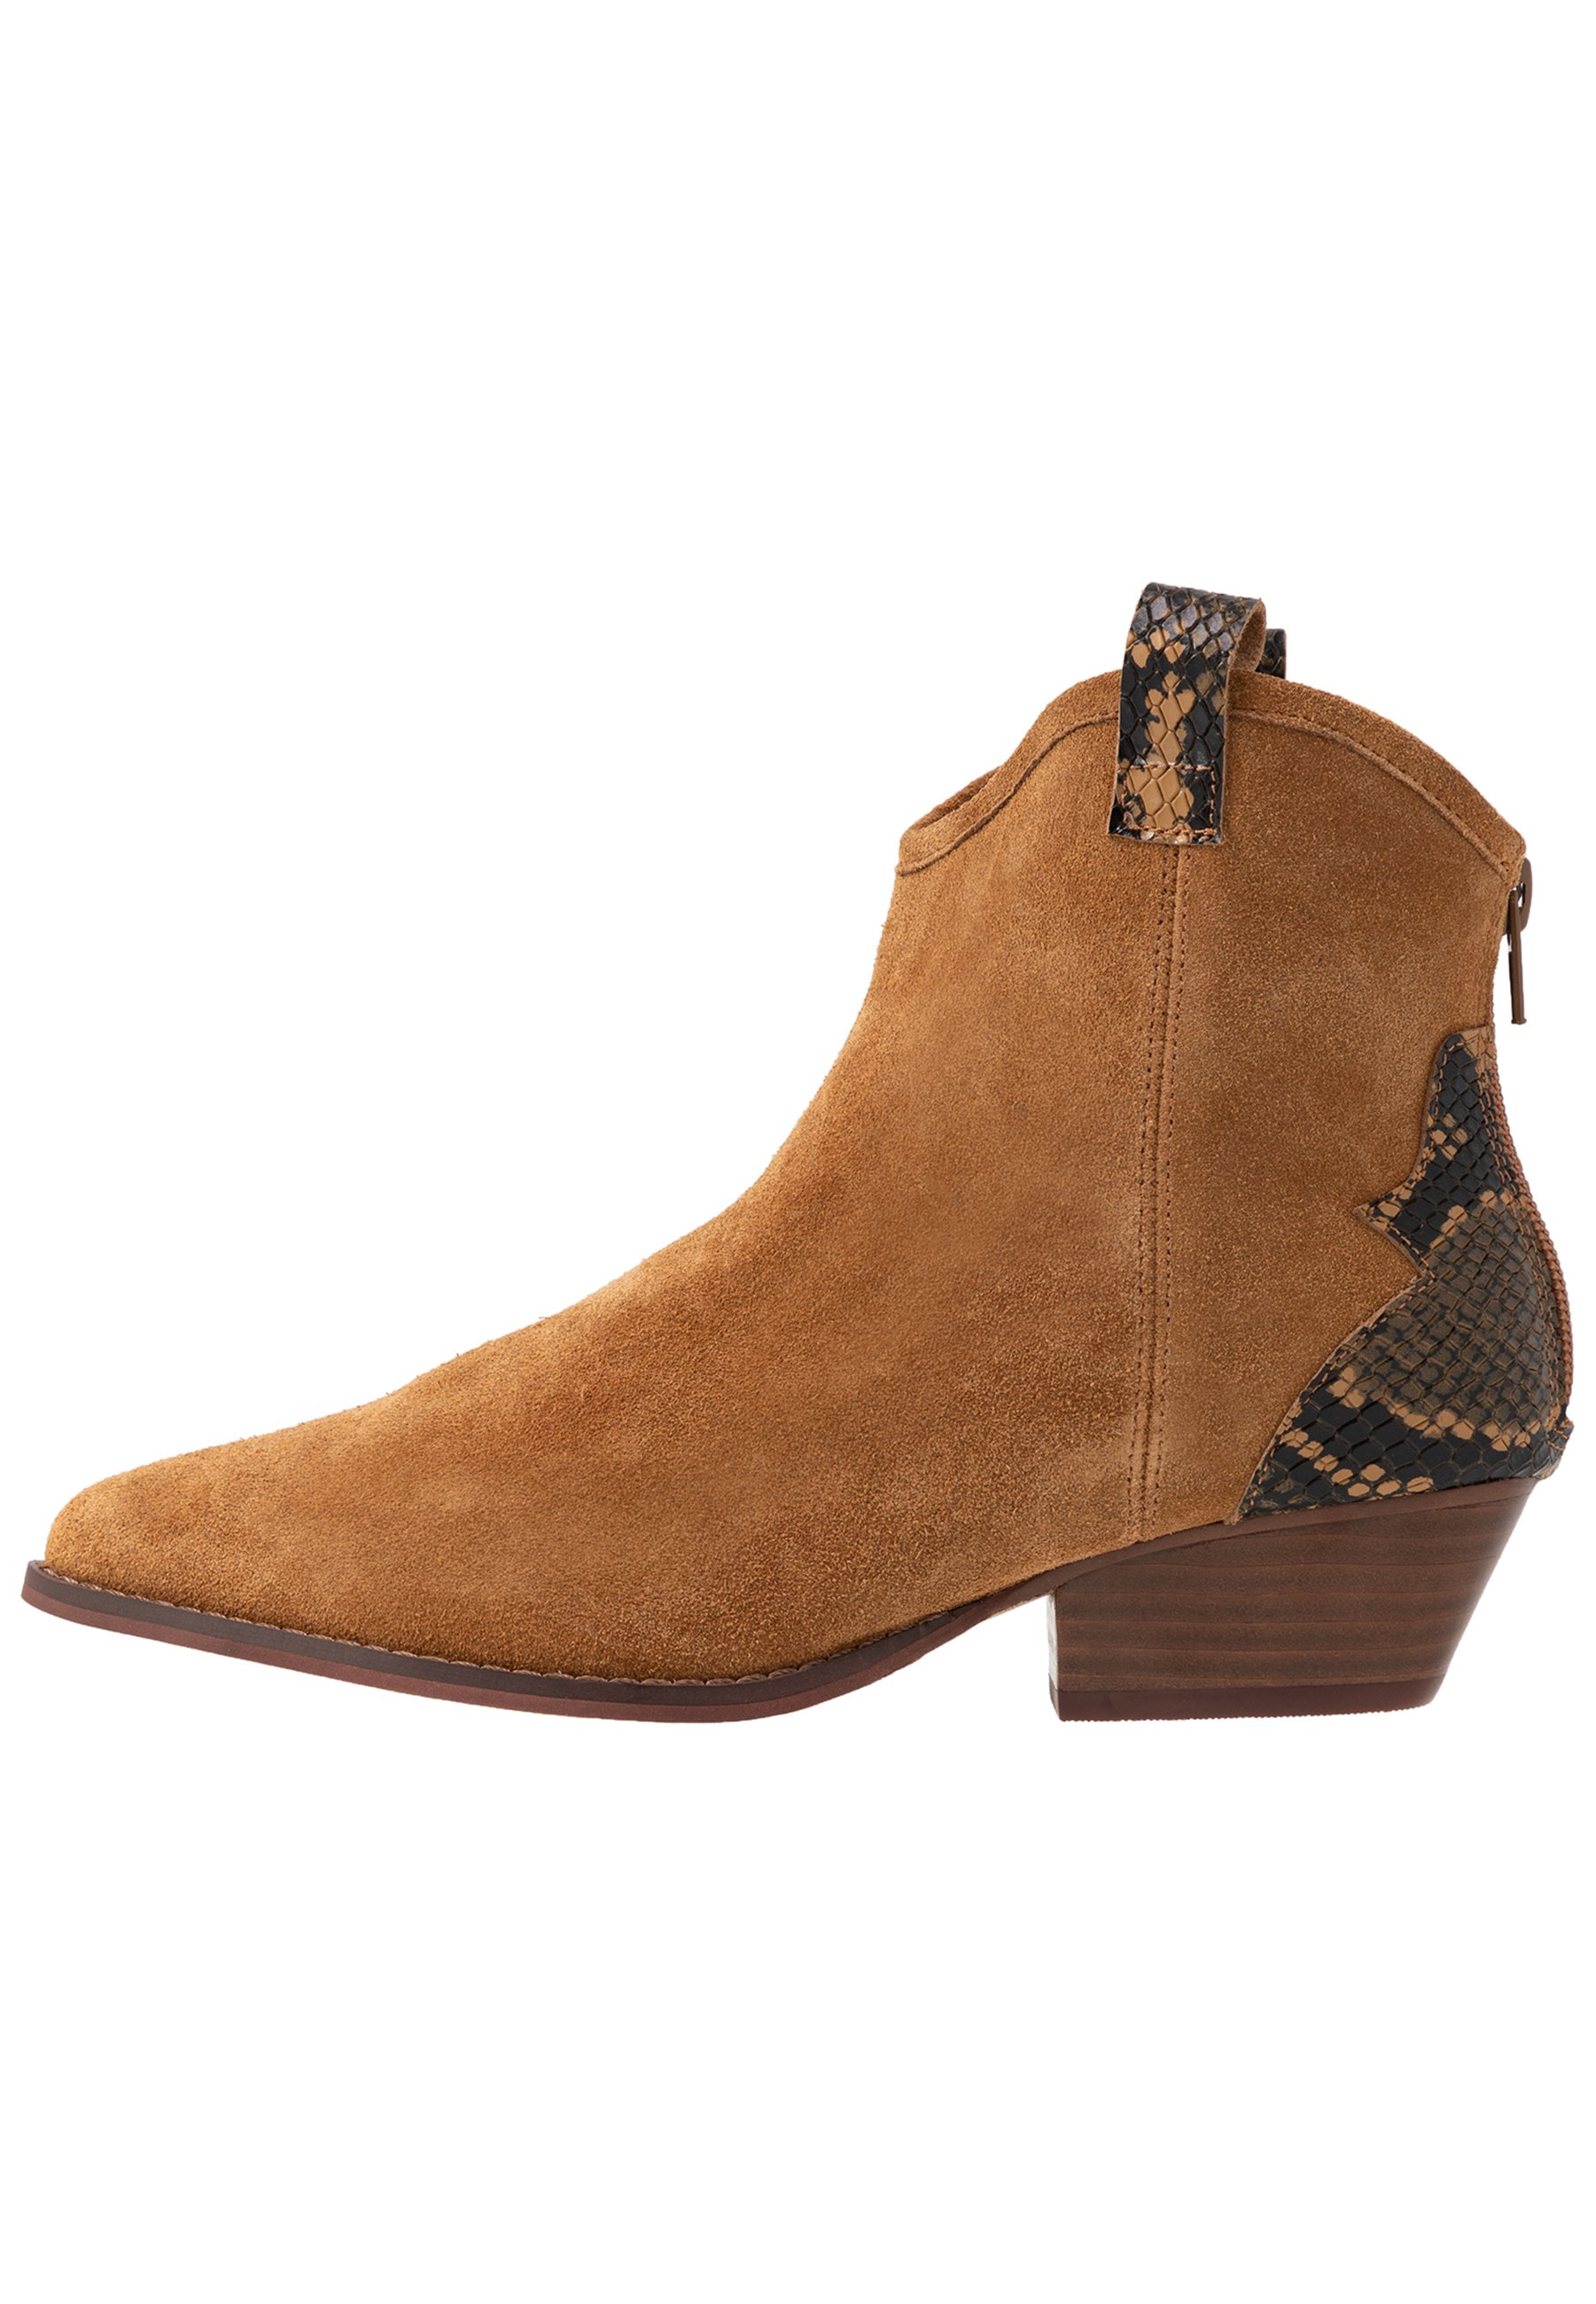 Bianco Biadaya Western Boot - Stivaletti Texani / Biker Light Brown G00r2se